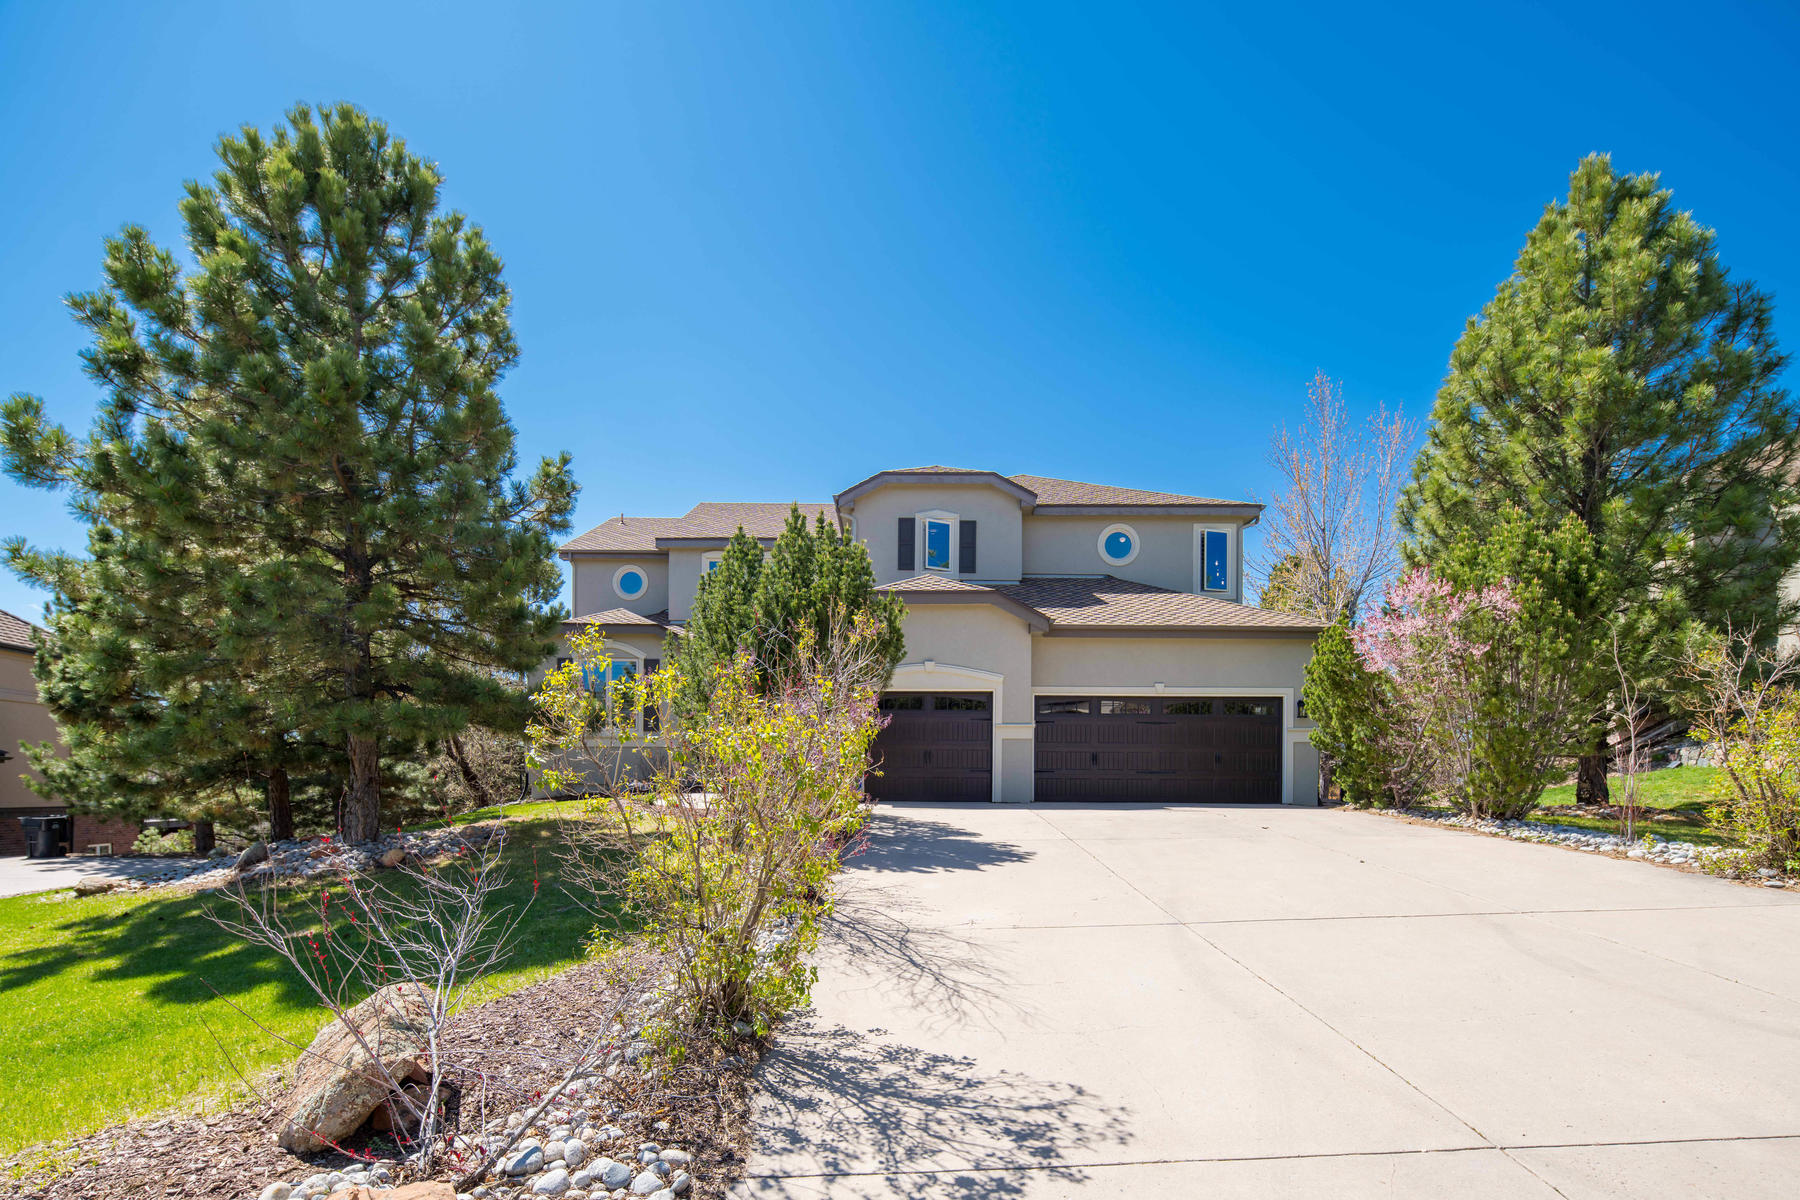 Single Family Homes for Sale at Stunning Home On the Golf Course in Geln Oakes 7482 Glen Ridge Drive Castle Pines, Colorado 80108 United States